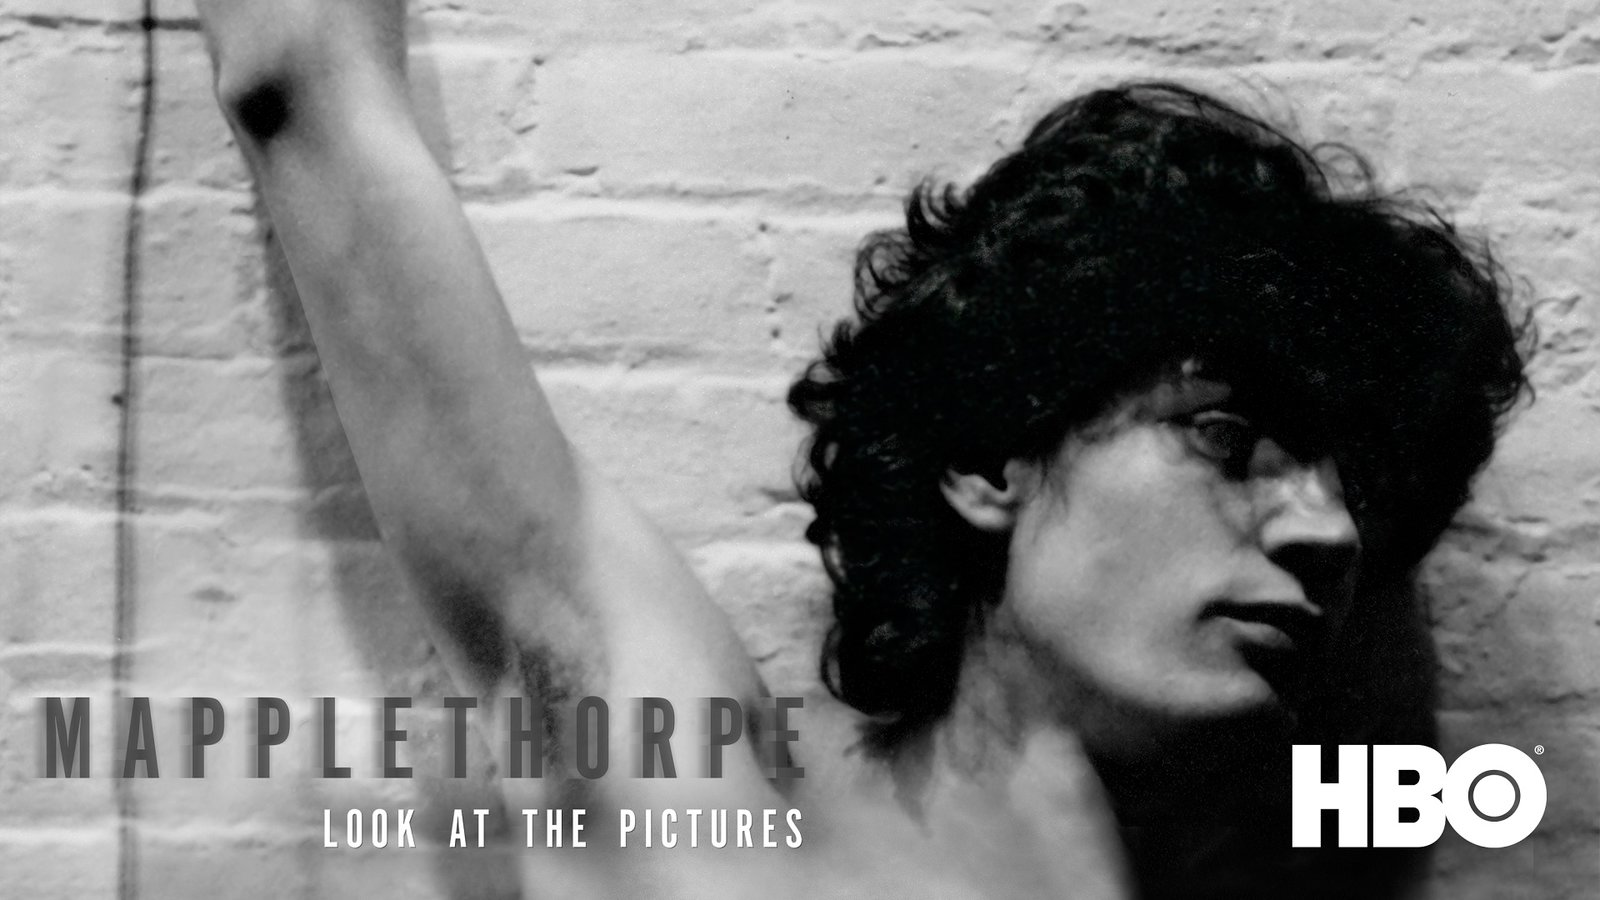 Mapplethorpe: Look at the Pictures - The Provocative Photographer Who Changed Contemporary Photography